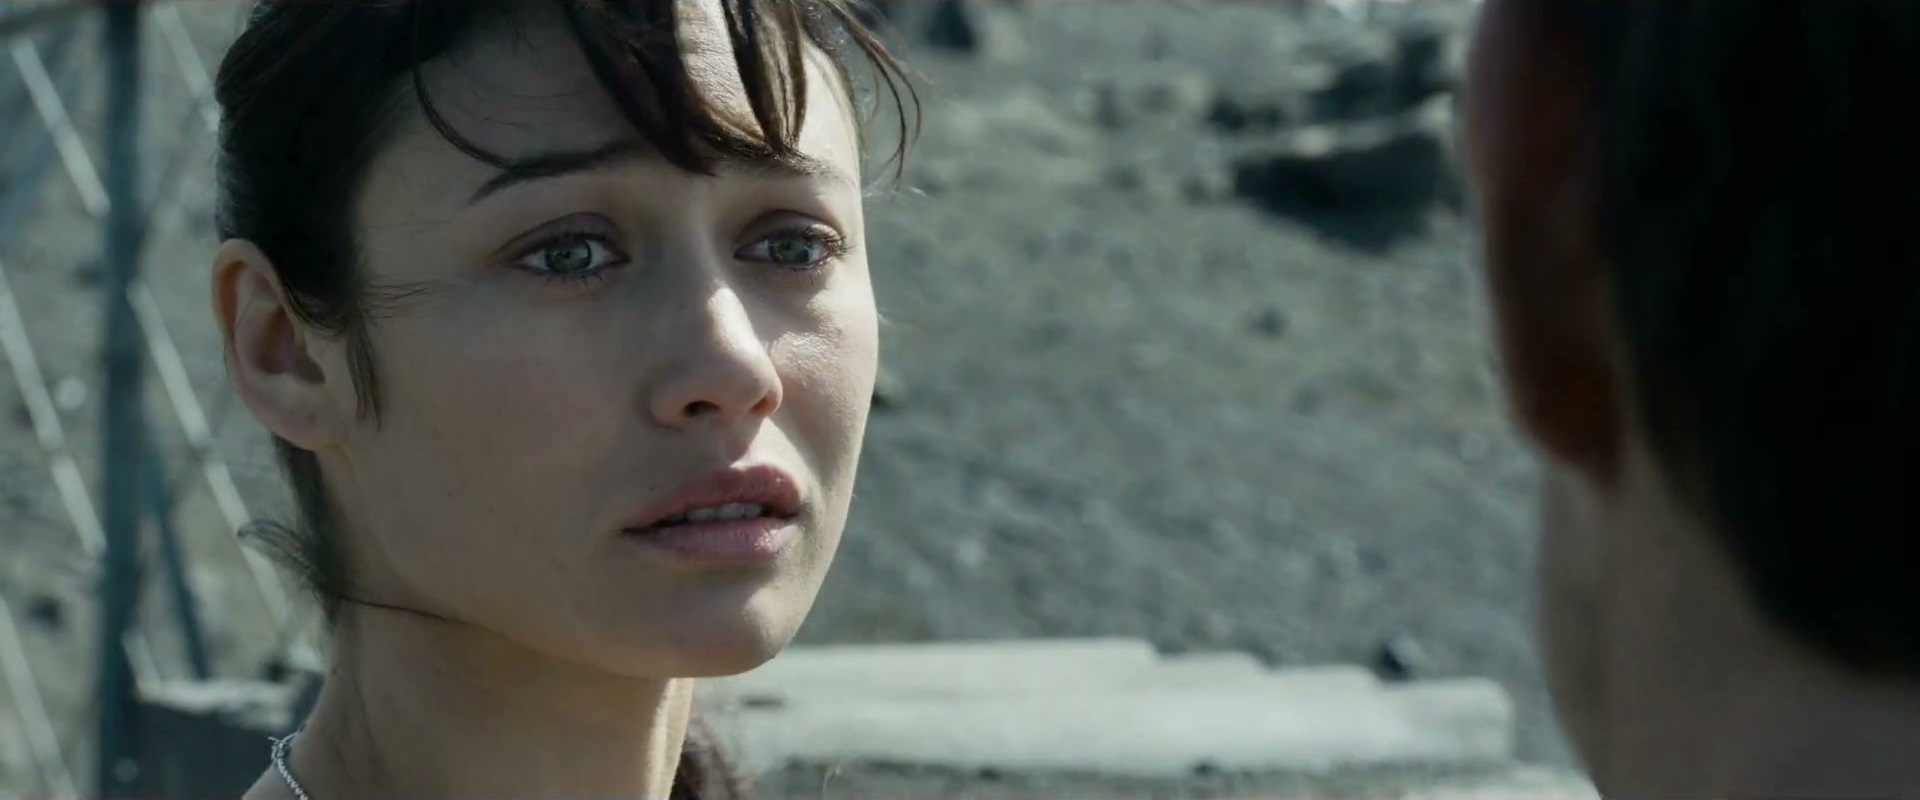 Olga Kurylenko (as Julia in Oblivion) | SPACE JOCKEY REVIEWS